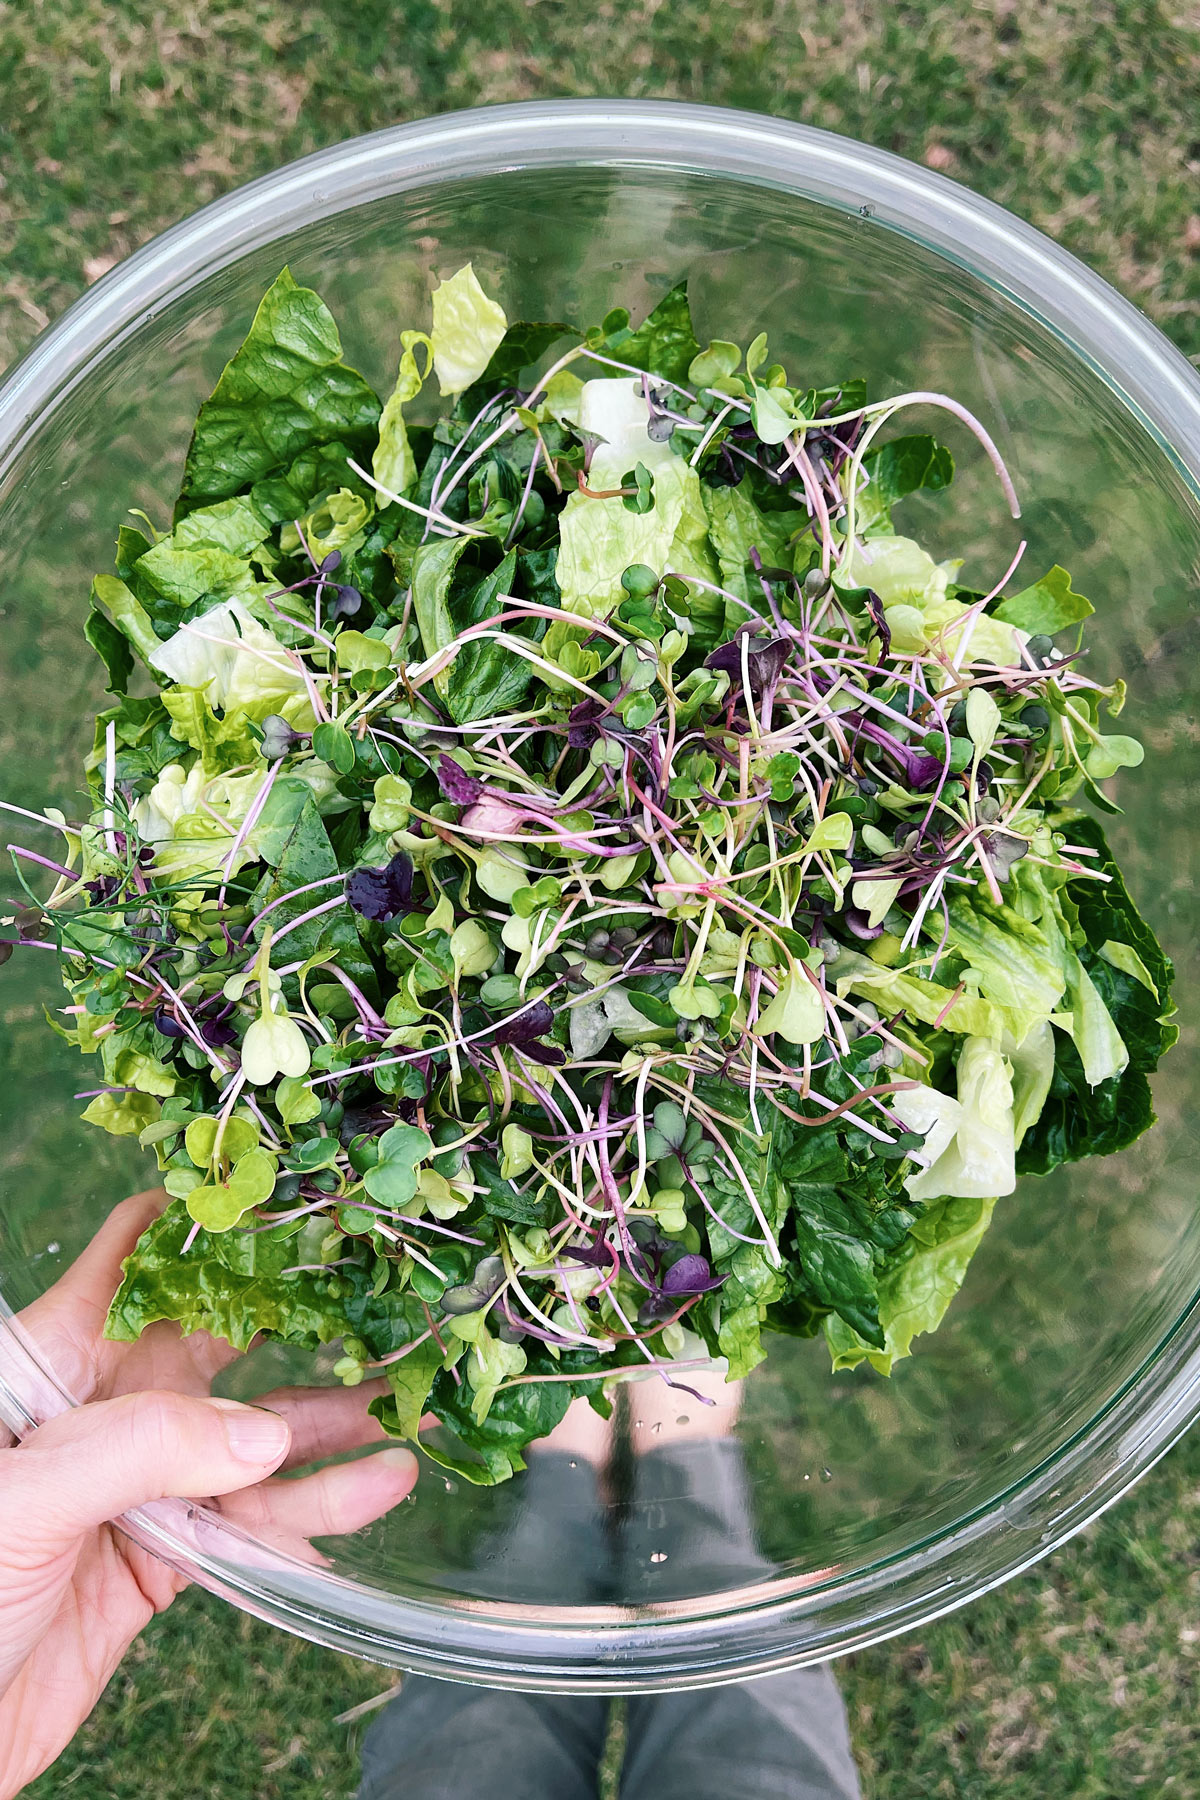 Person holding a bowl of microgreens and leafy salad greens